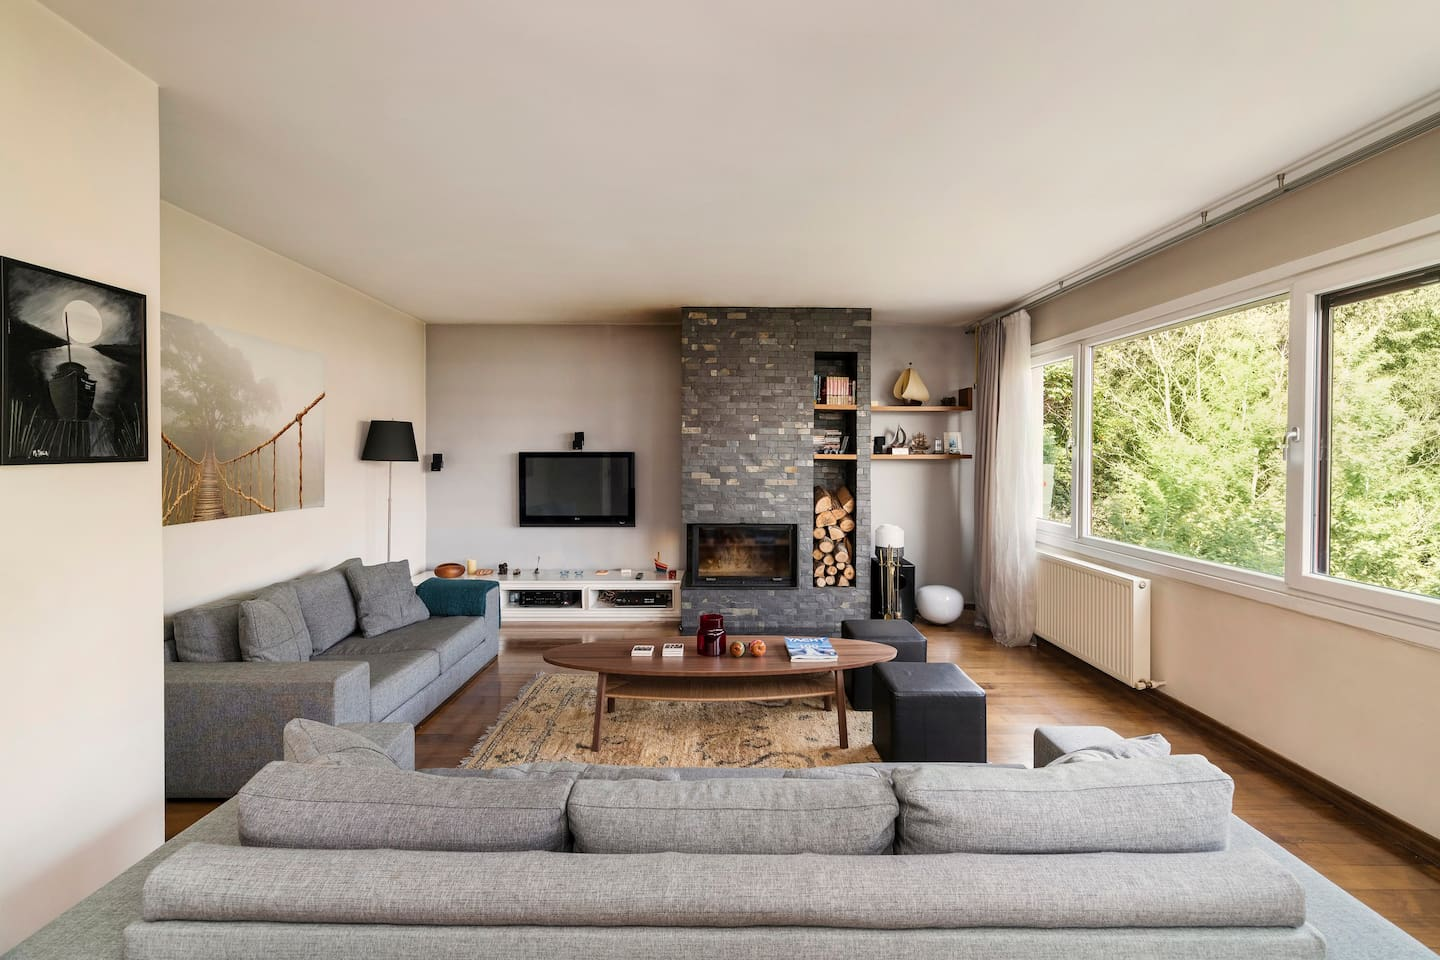 Spacious living room with a built in fire place and beautiful open views of the nature and Bosphorus.